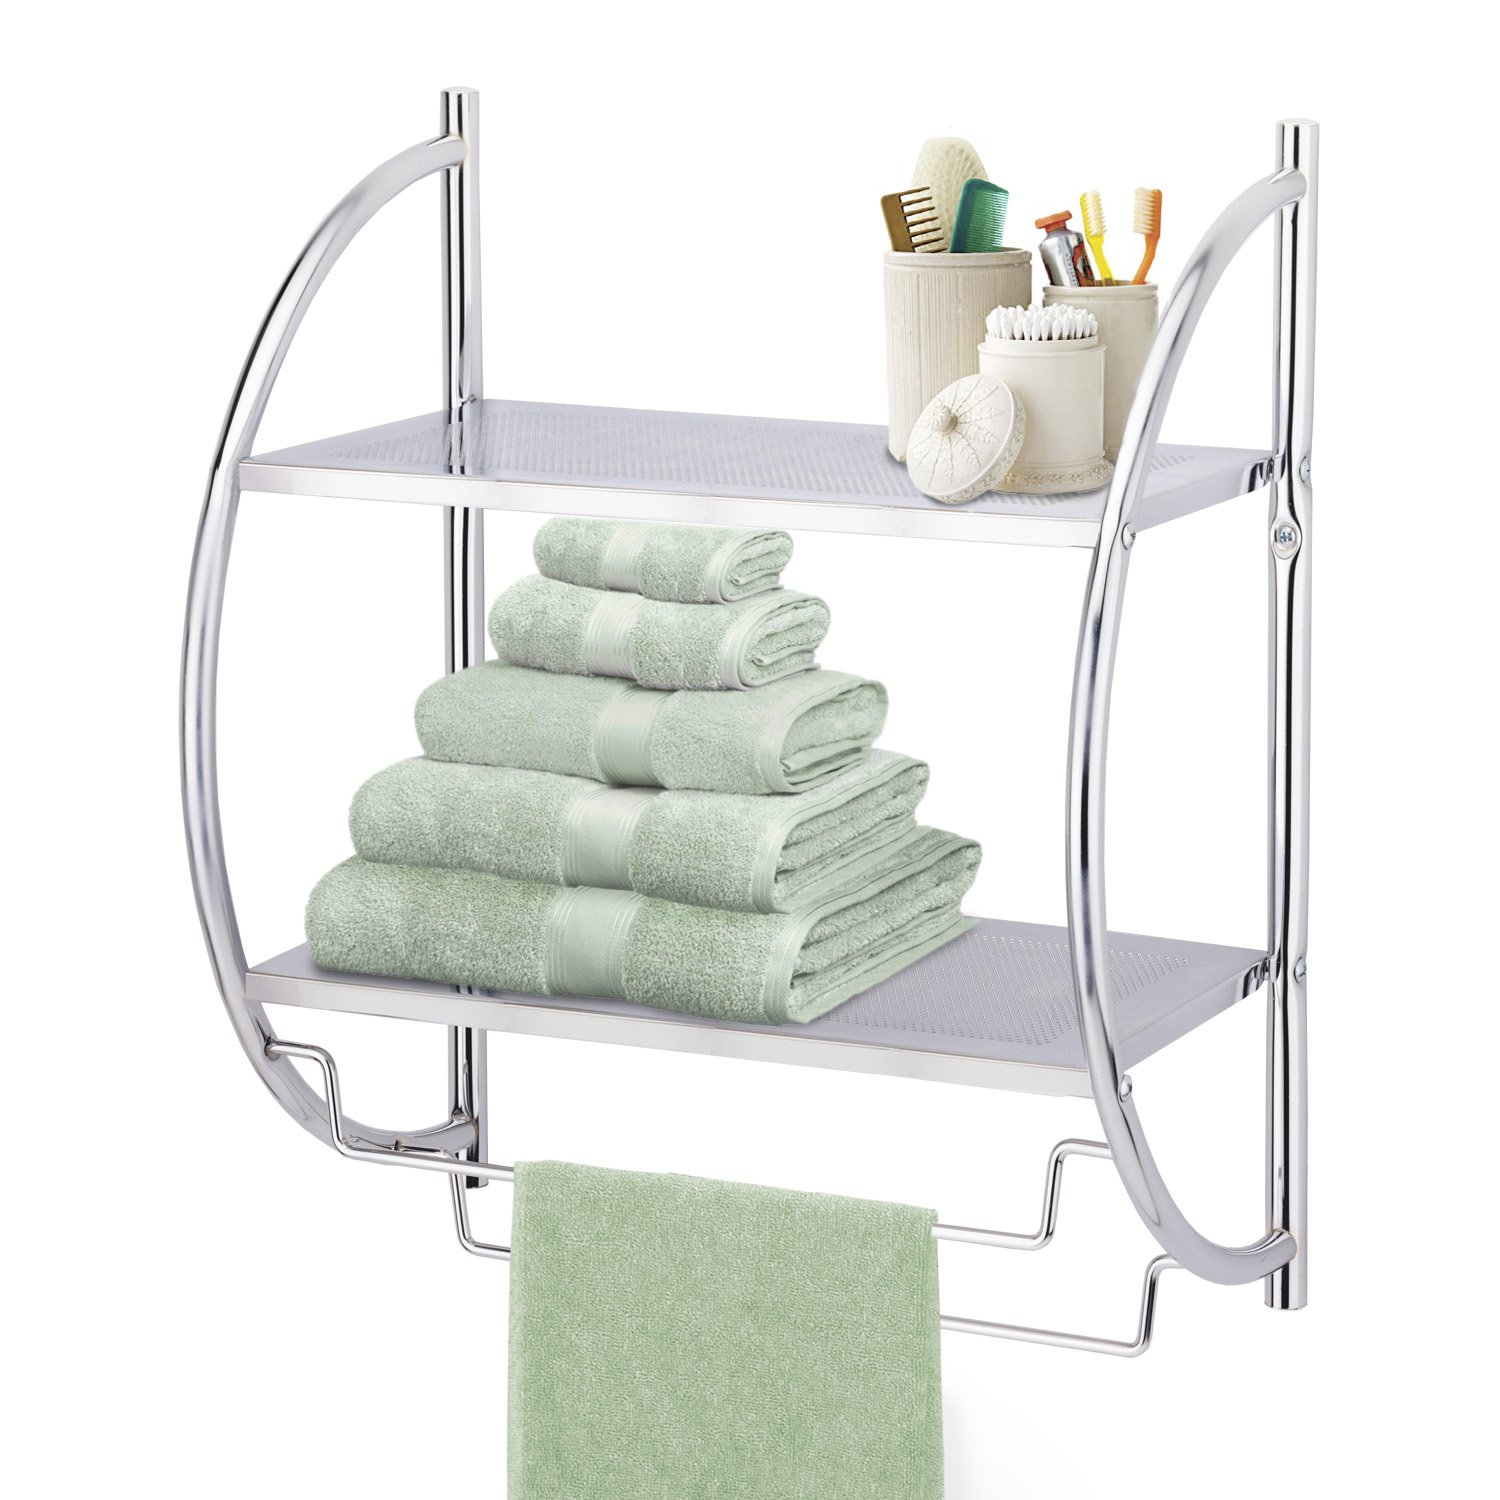 for mounted with train rack hooks holder wall towels rolled towel bathroom hanger s